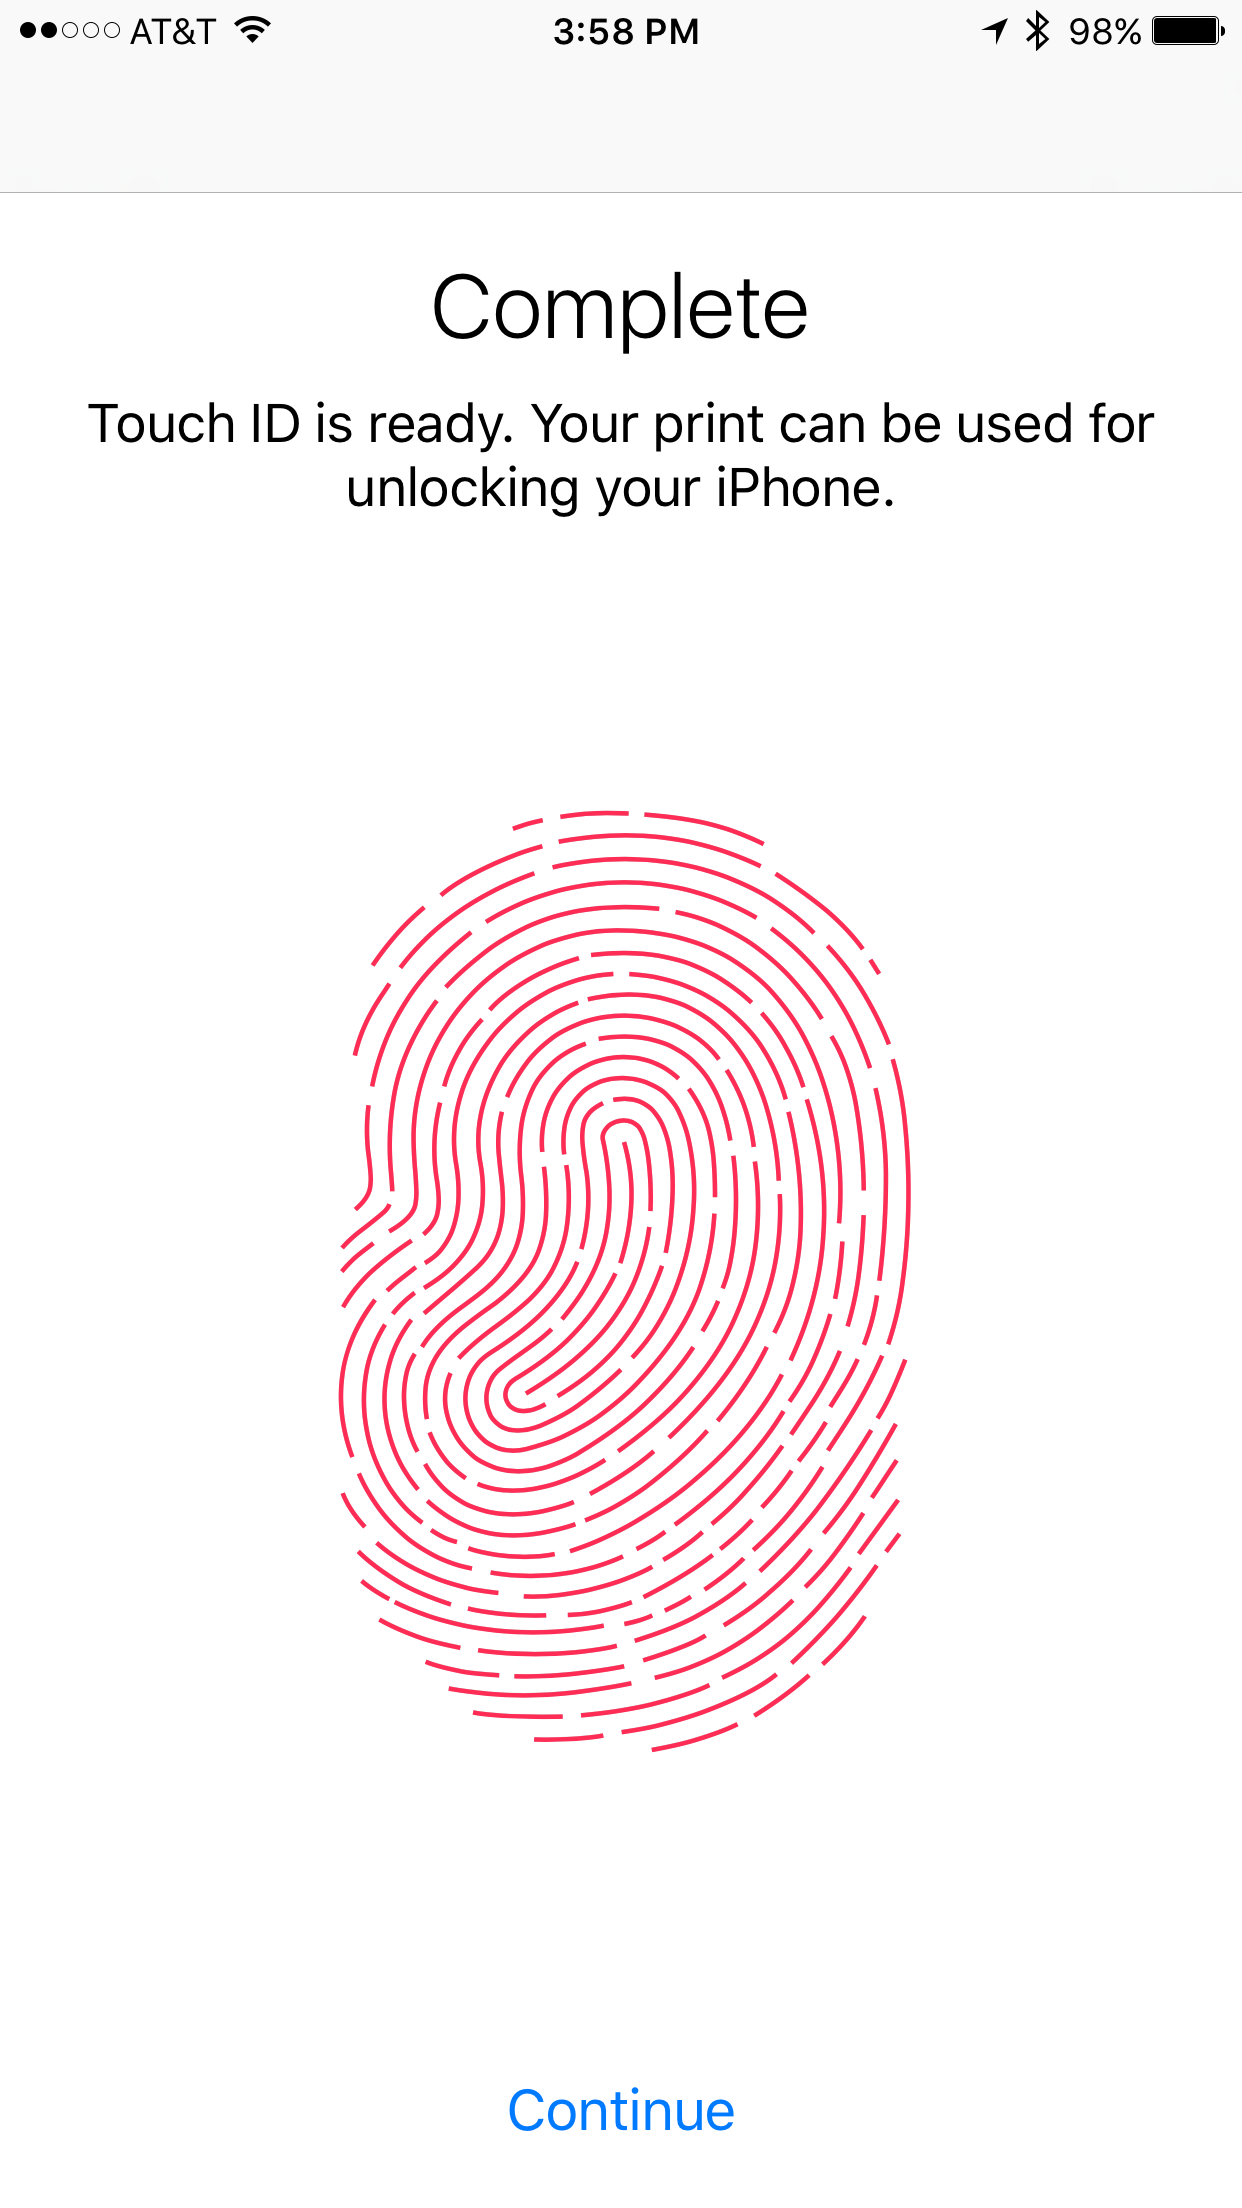 Complete new Touch ID fingerprint